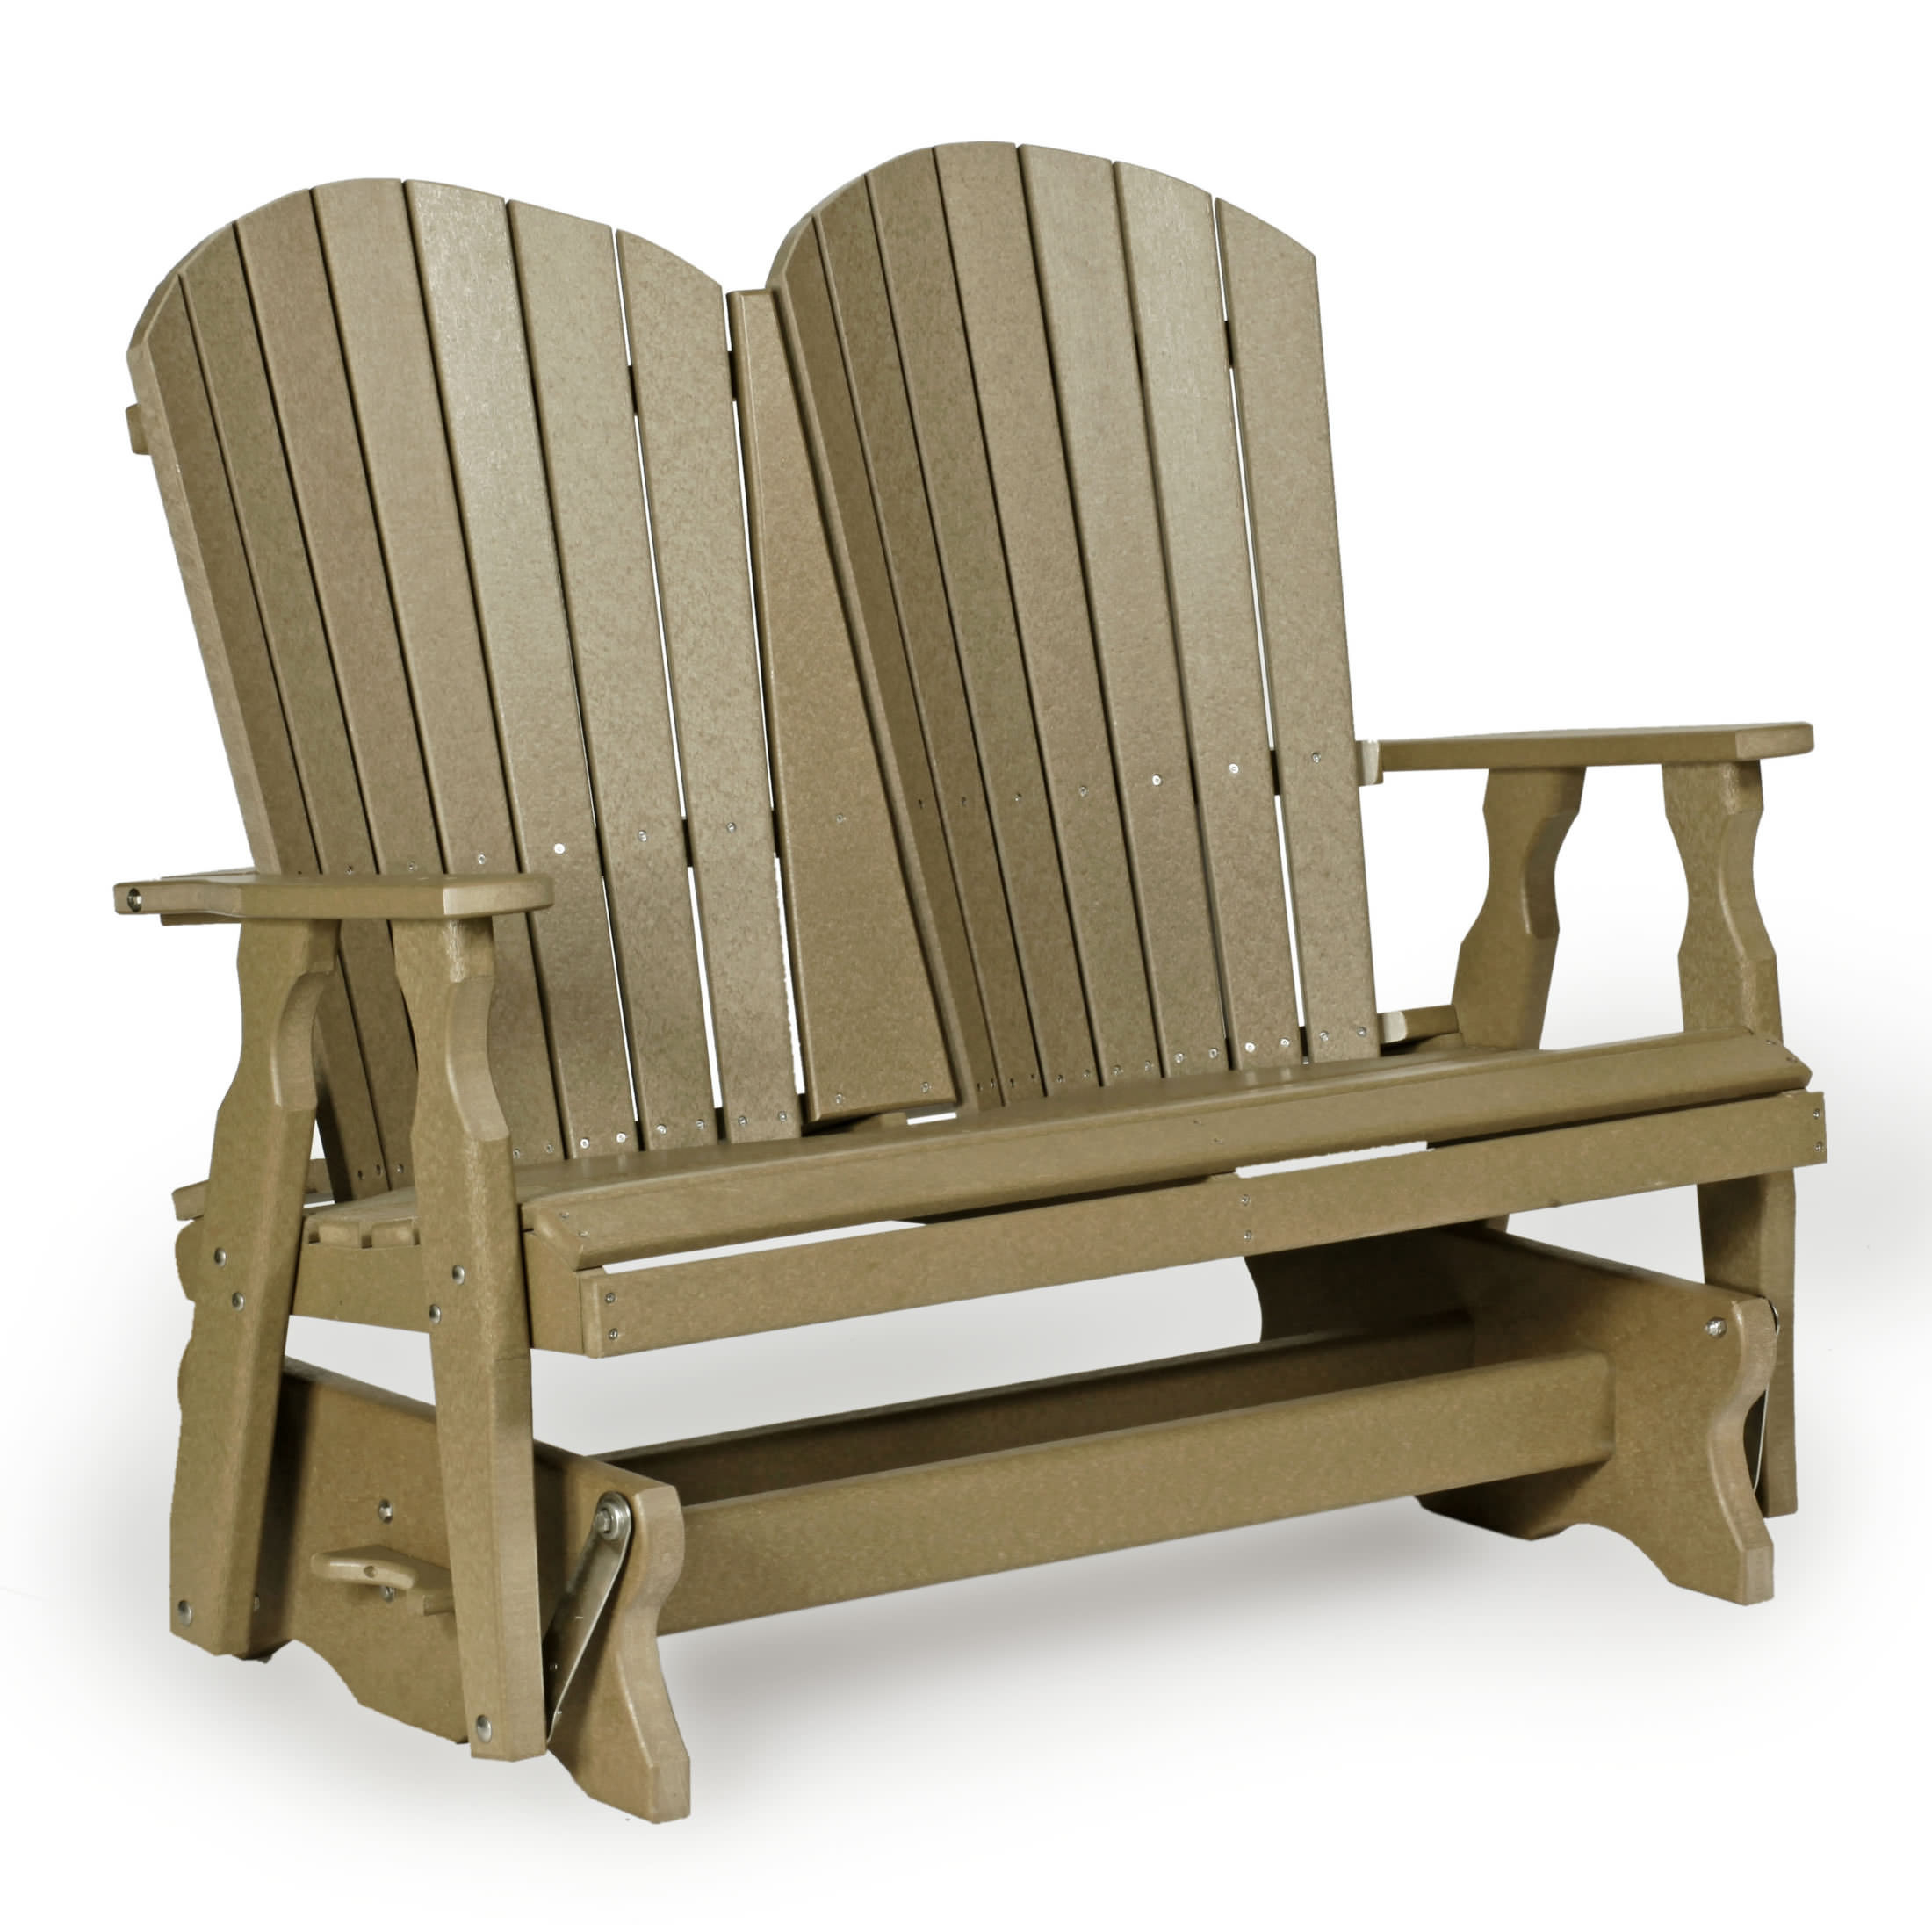 Amish 4' Poly Fan Back Glider – Leisure Lawns Collection Within Fanback Glider Benches (View 10 of 25)